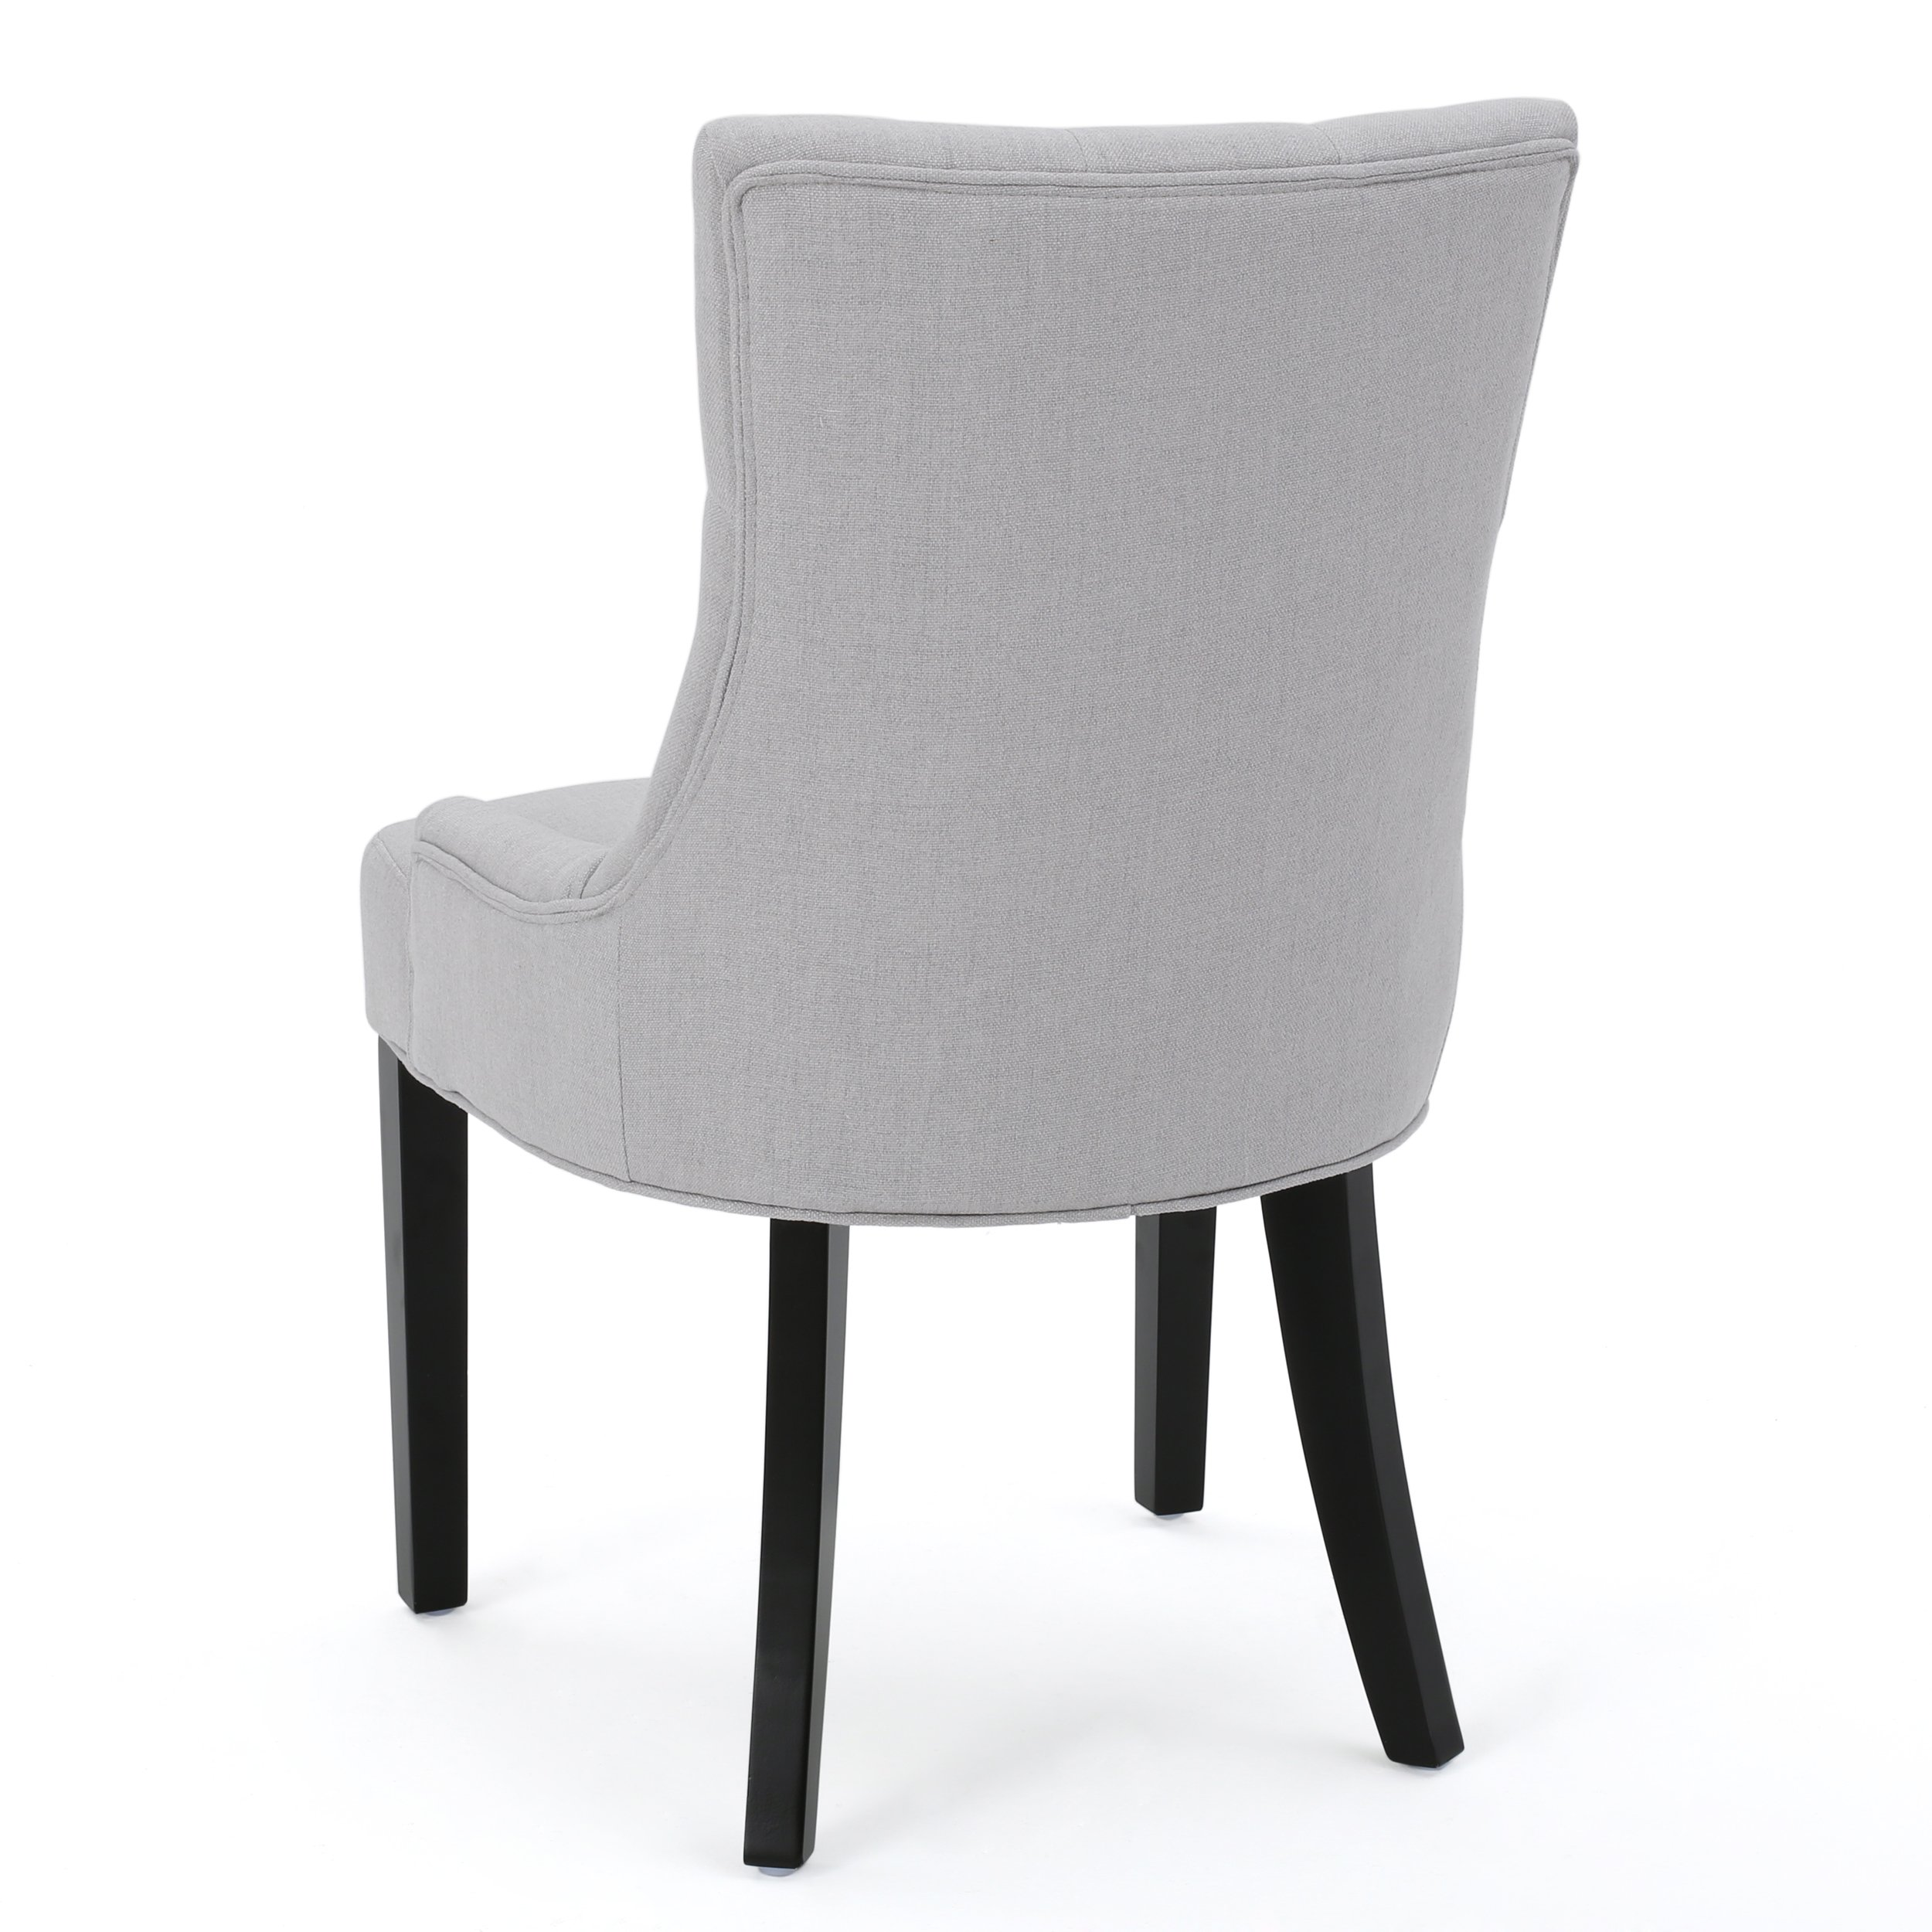 Christopher Knight Home 299538 Hayden Fabric Dining Chairs (Set of 2), Light Gray by Christopher Knight Home (Image #4)